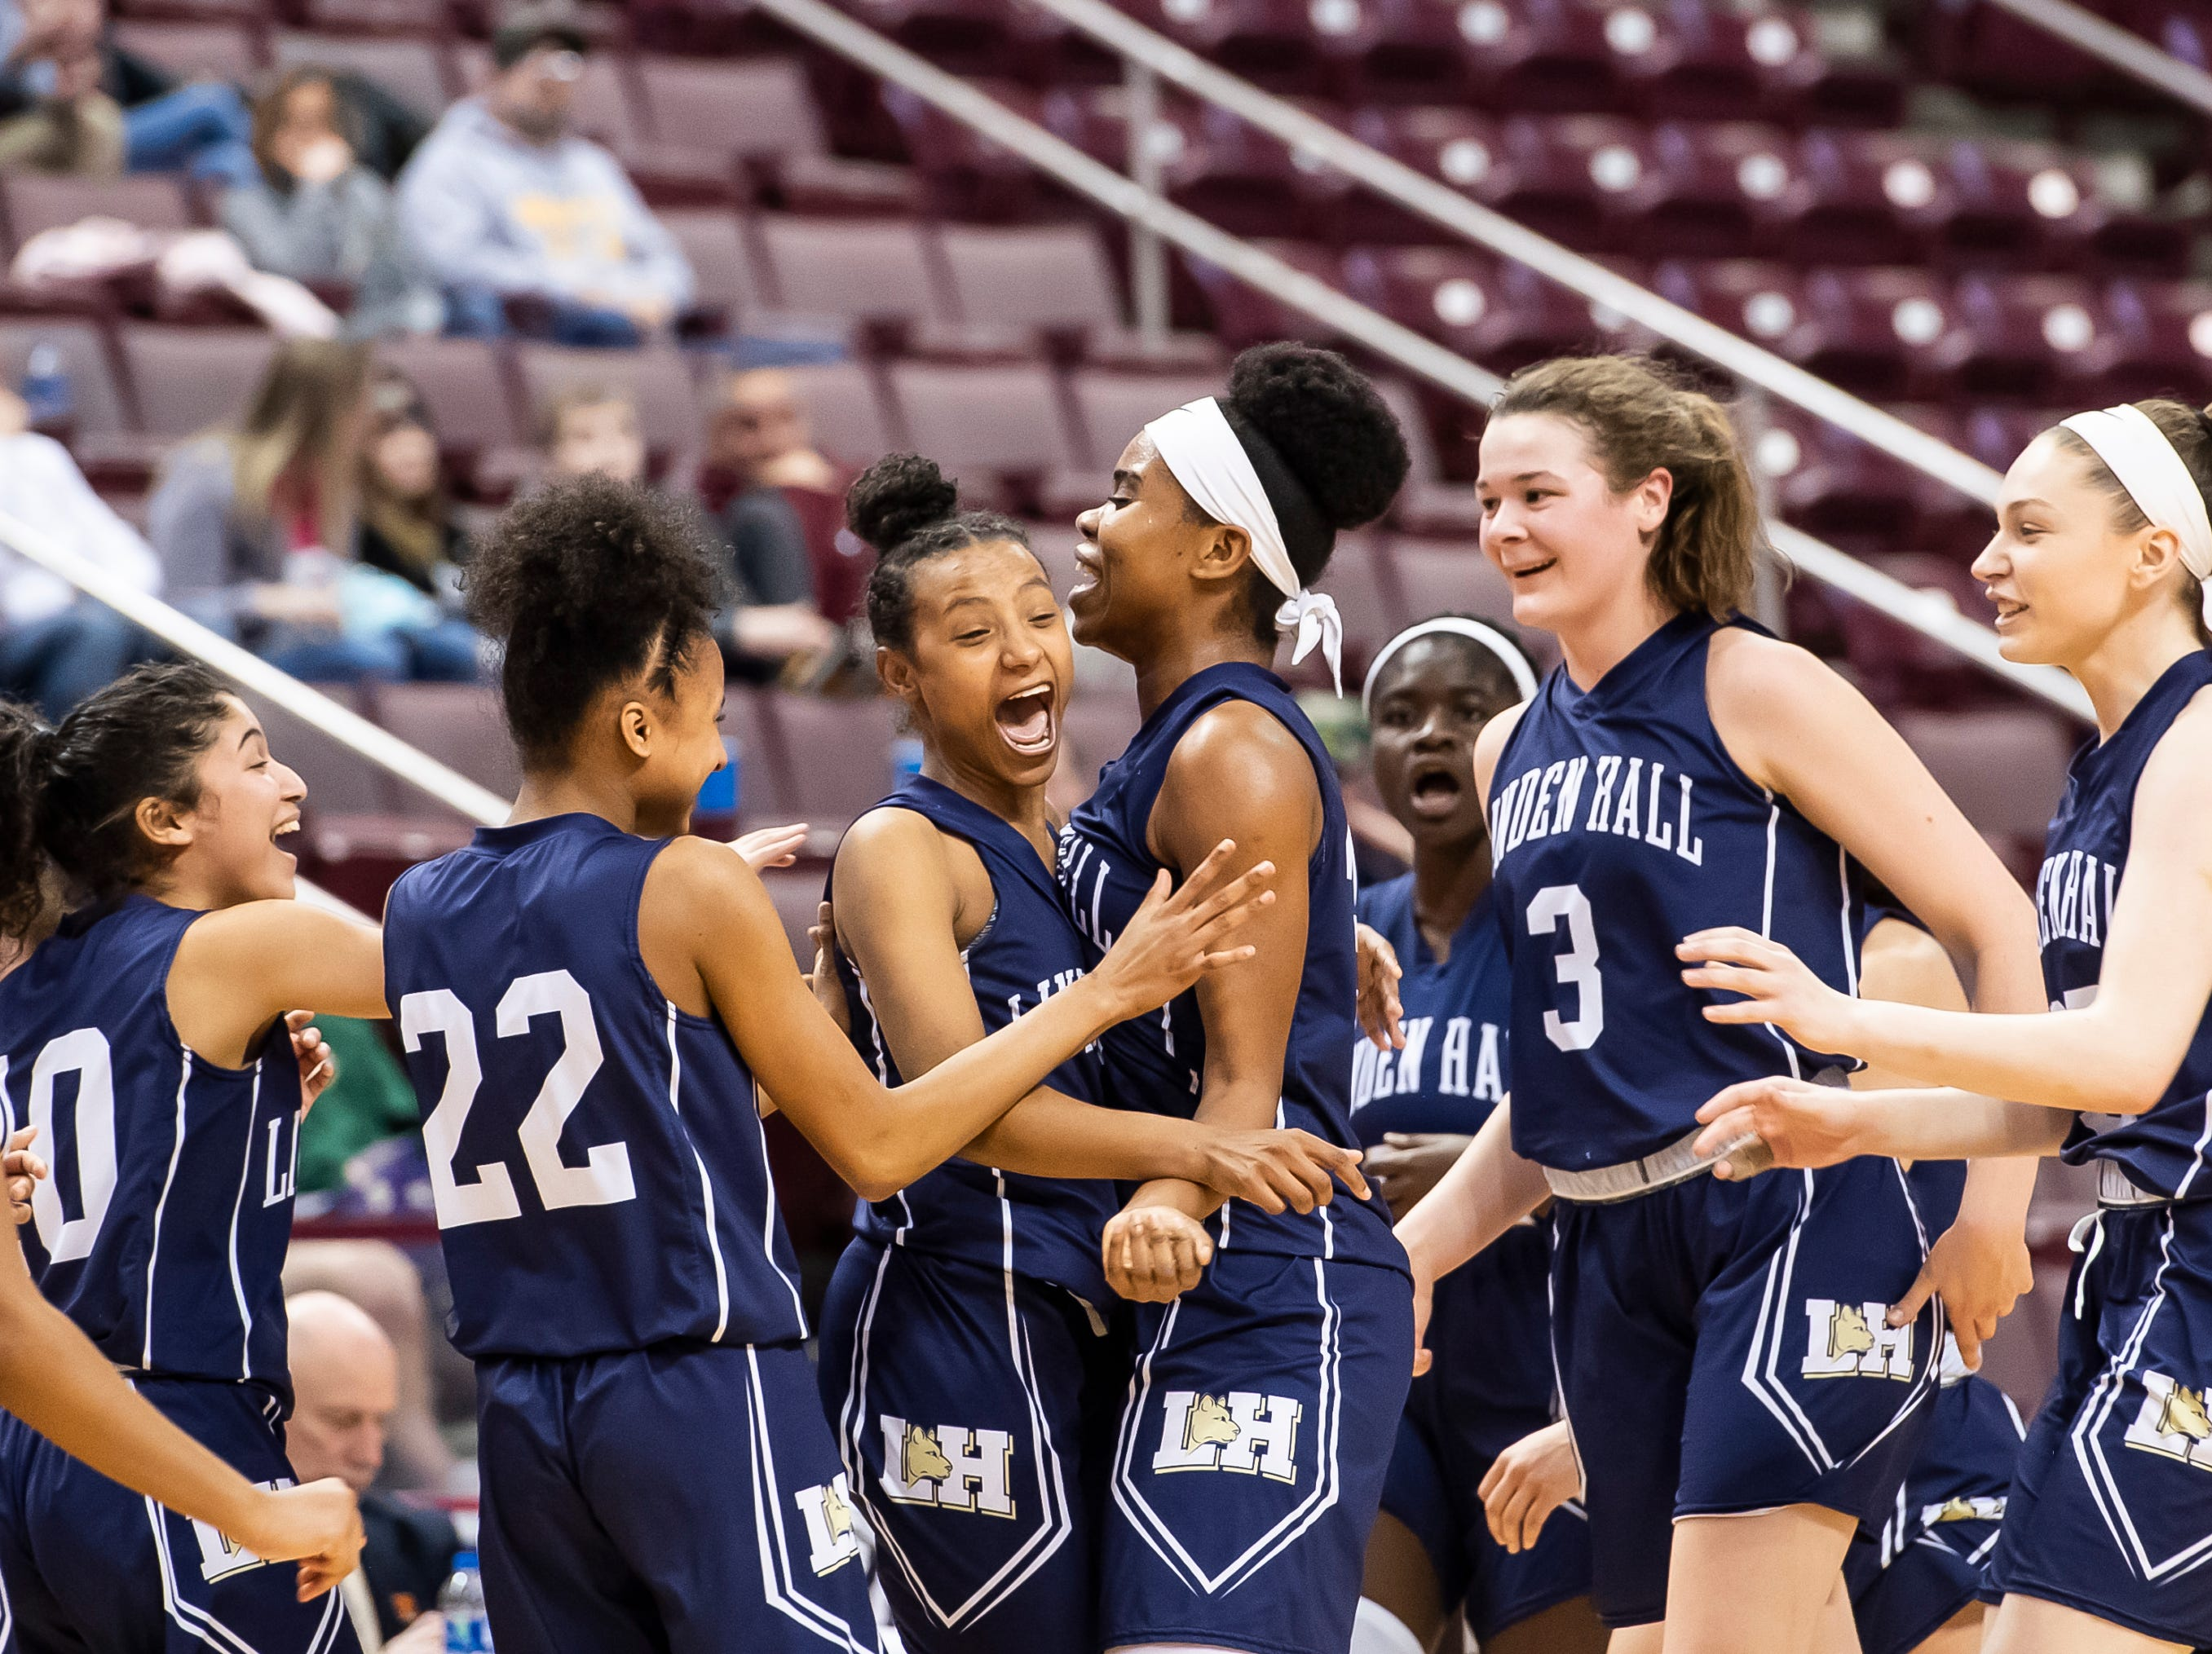 Linden Hall players celebrate with Favour Mbeledeogu, center, after she scored a buzzer beater before halftime during the District 3 2-A girls championship game against York Catholic at the Giant Center in Hershey Tuesday, Feb. 26, 2019. The Fighting Irish fell 56-27.